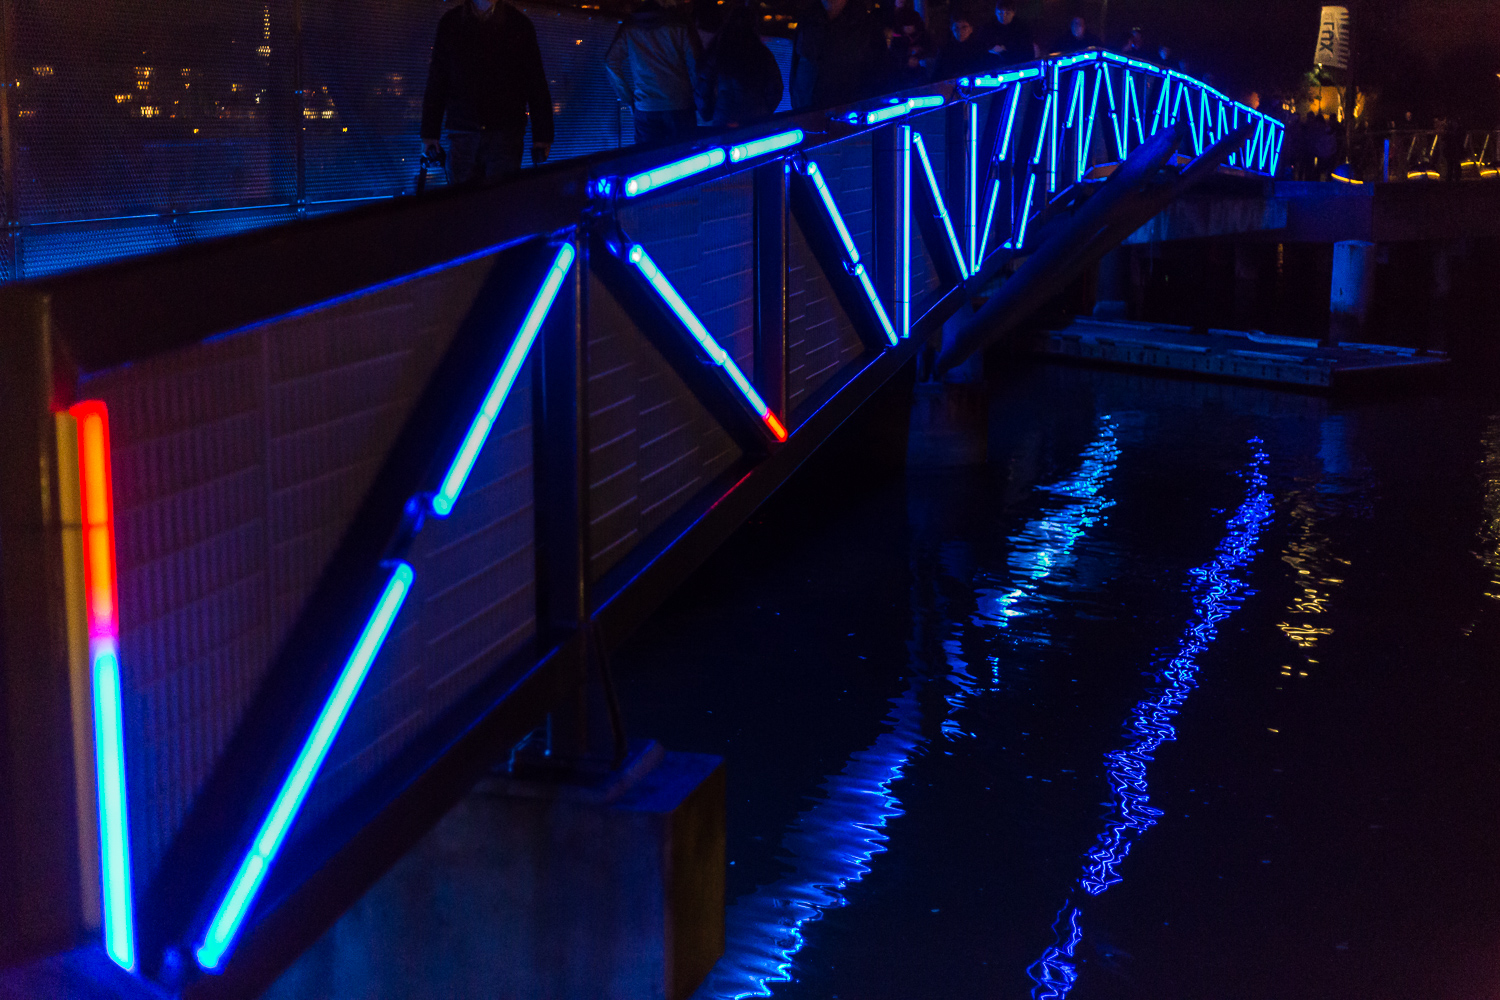 The neon bridge (TENSION)